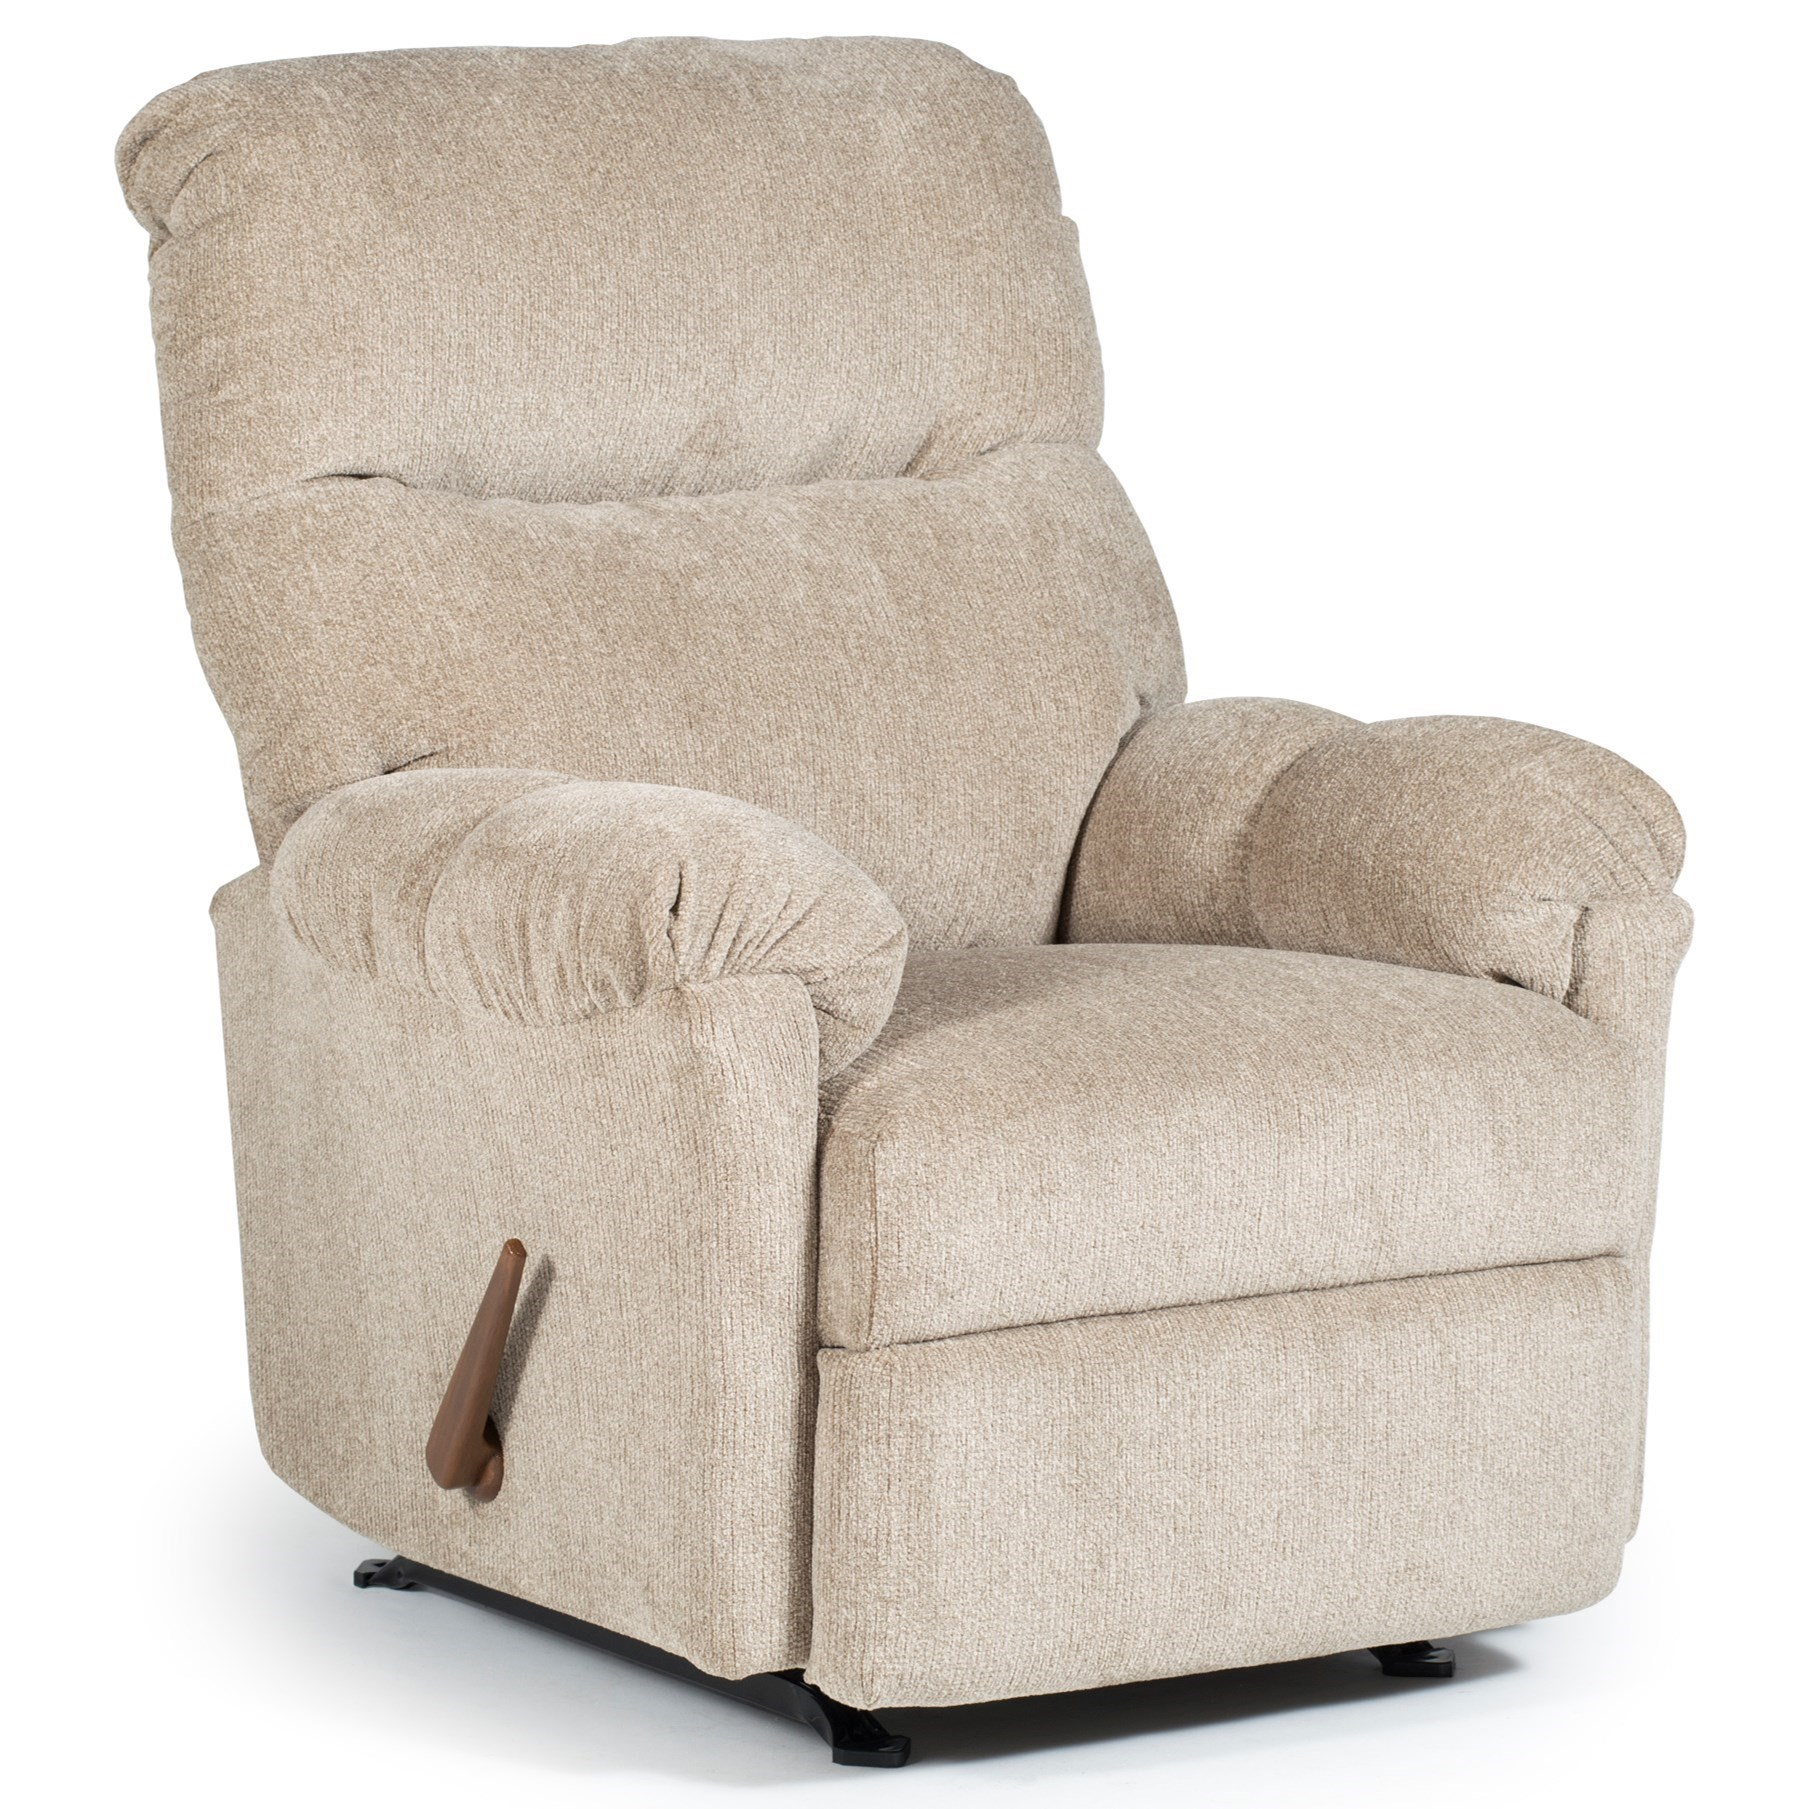 wall hugger recliner chair desk good posture best home furnishings medium recliners 2nw64 balmore reclining by